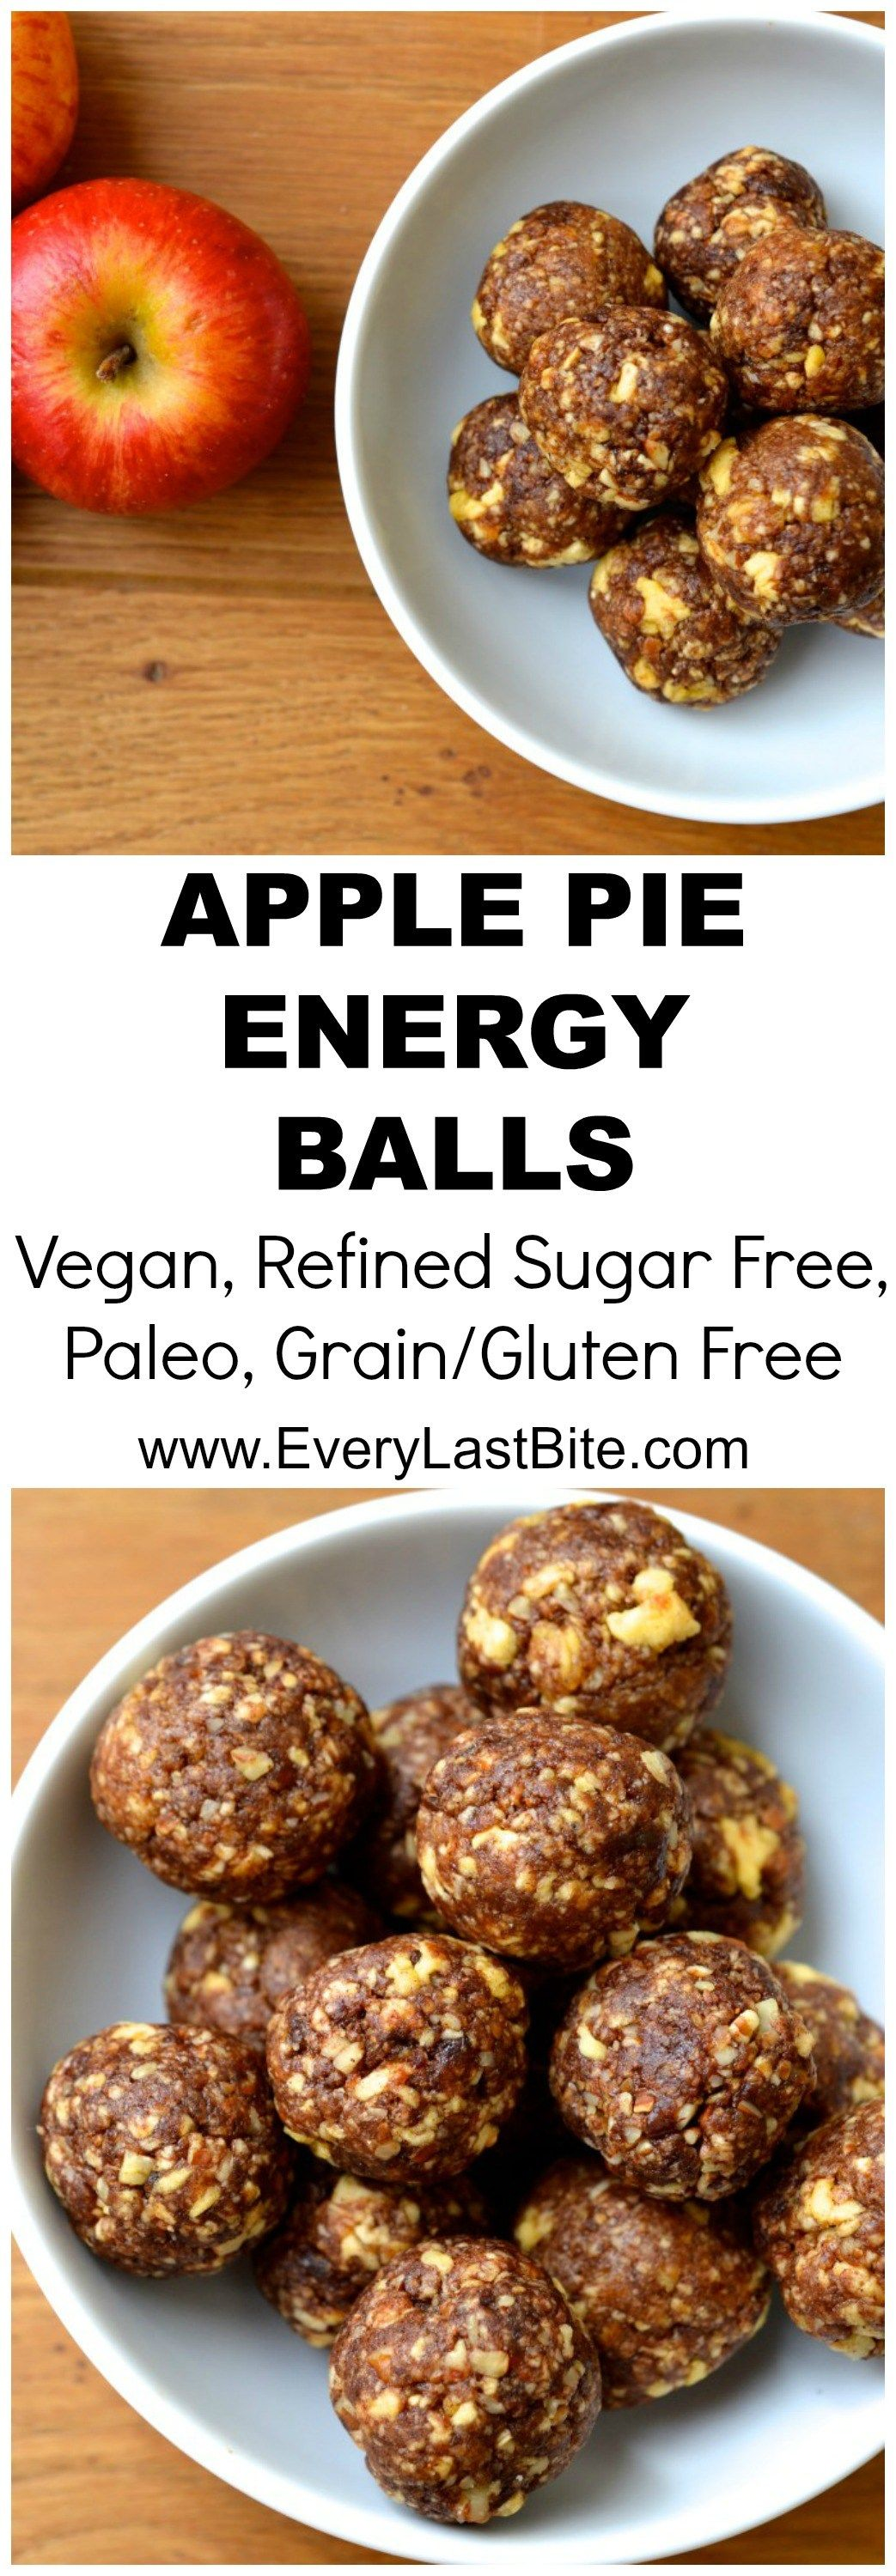 Apple Pie Energy Balls | Every Last Bite